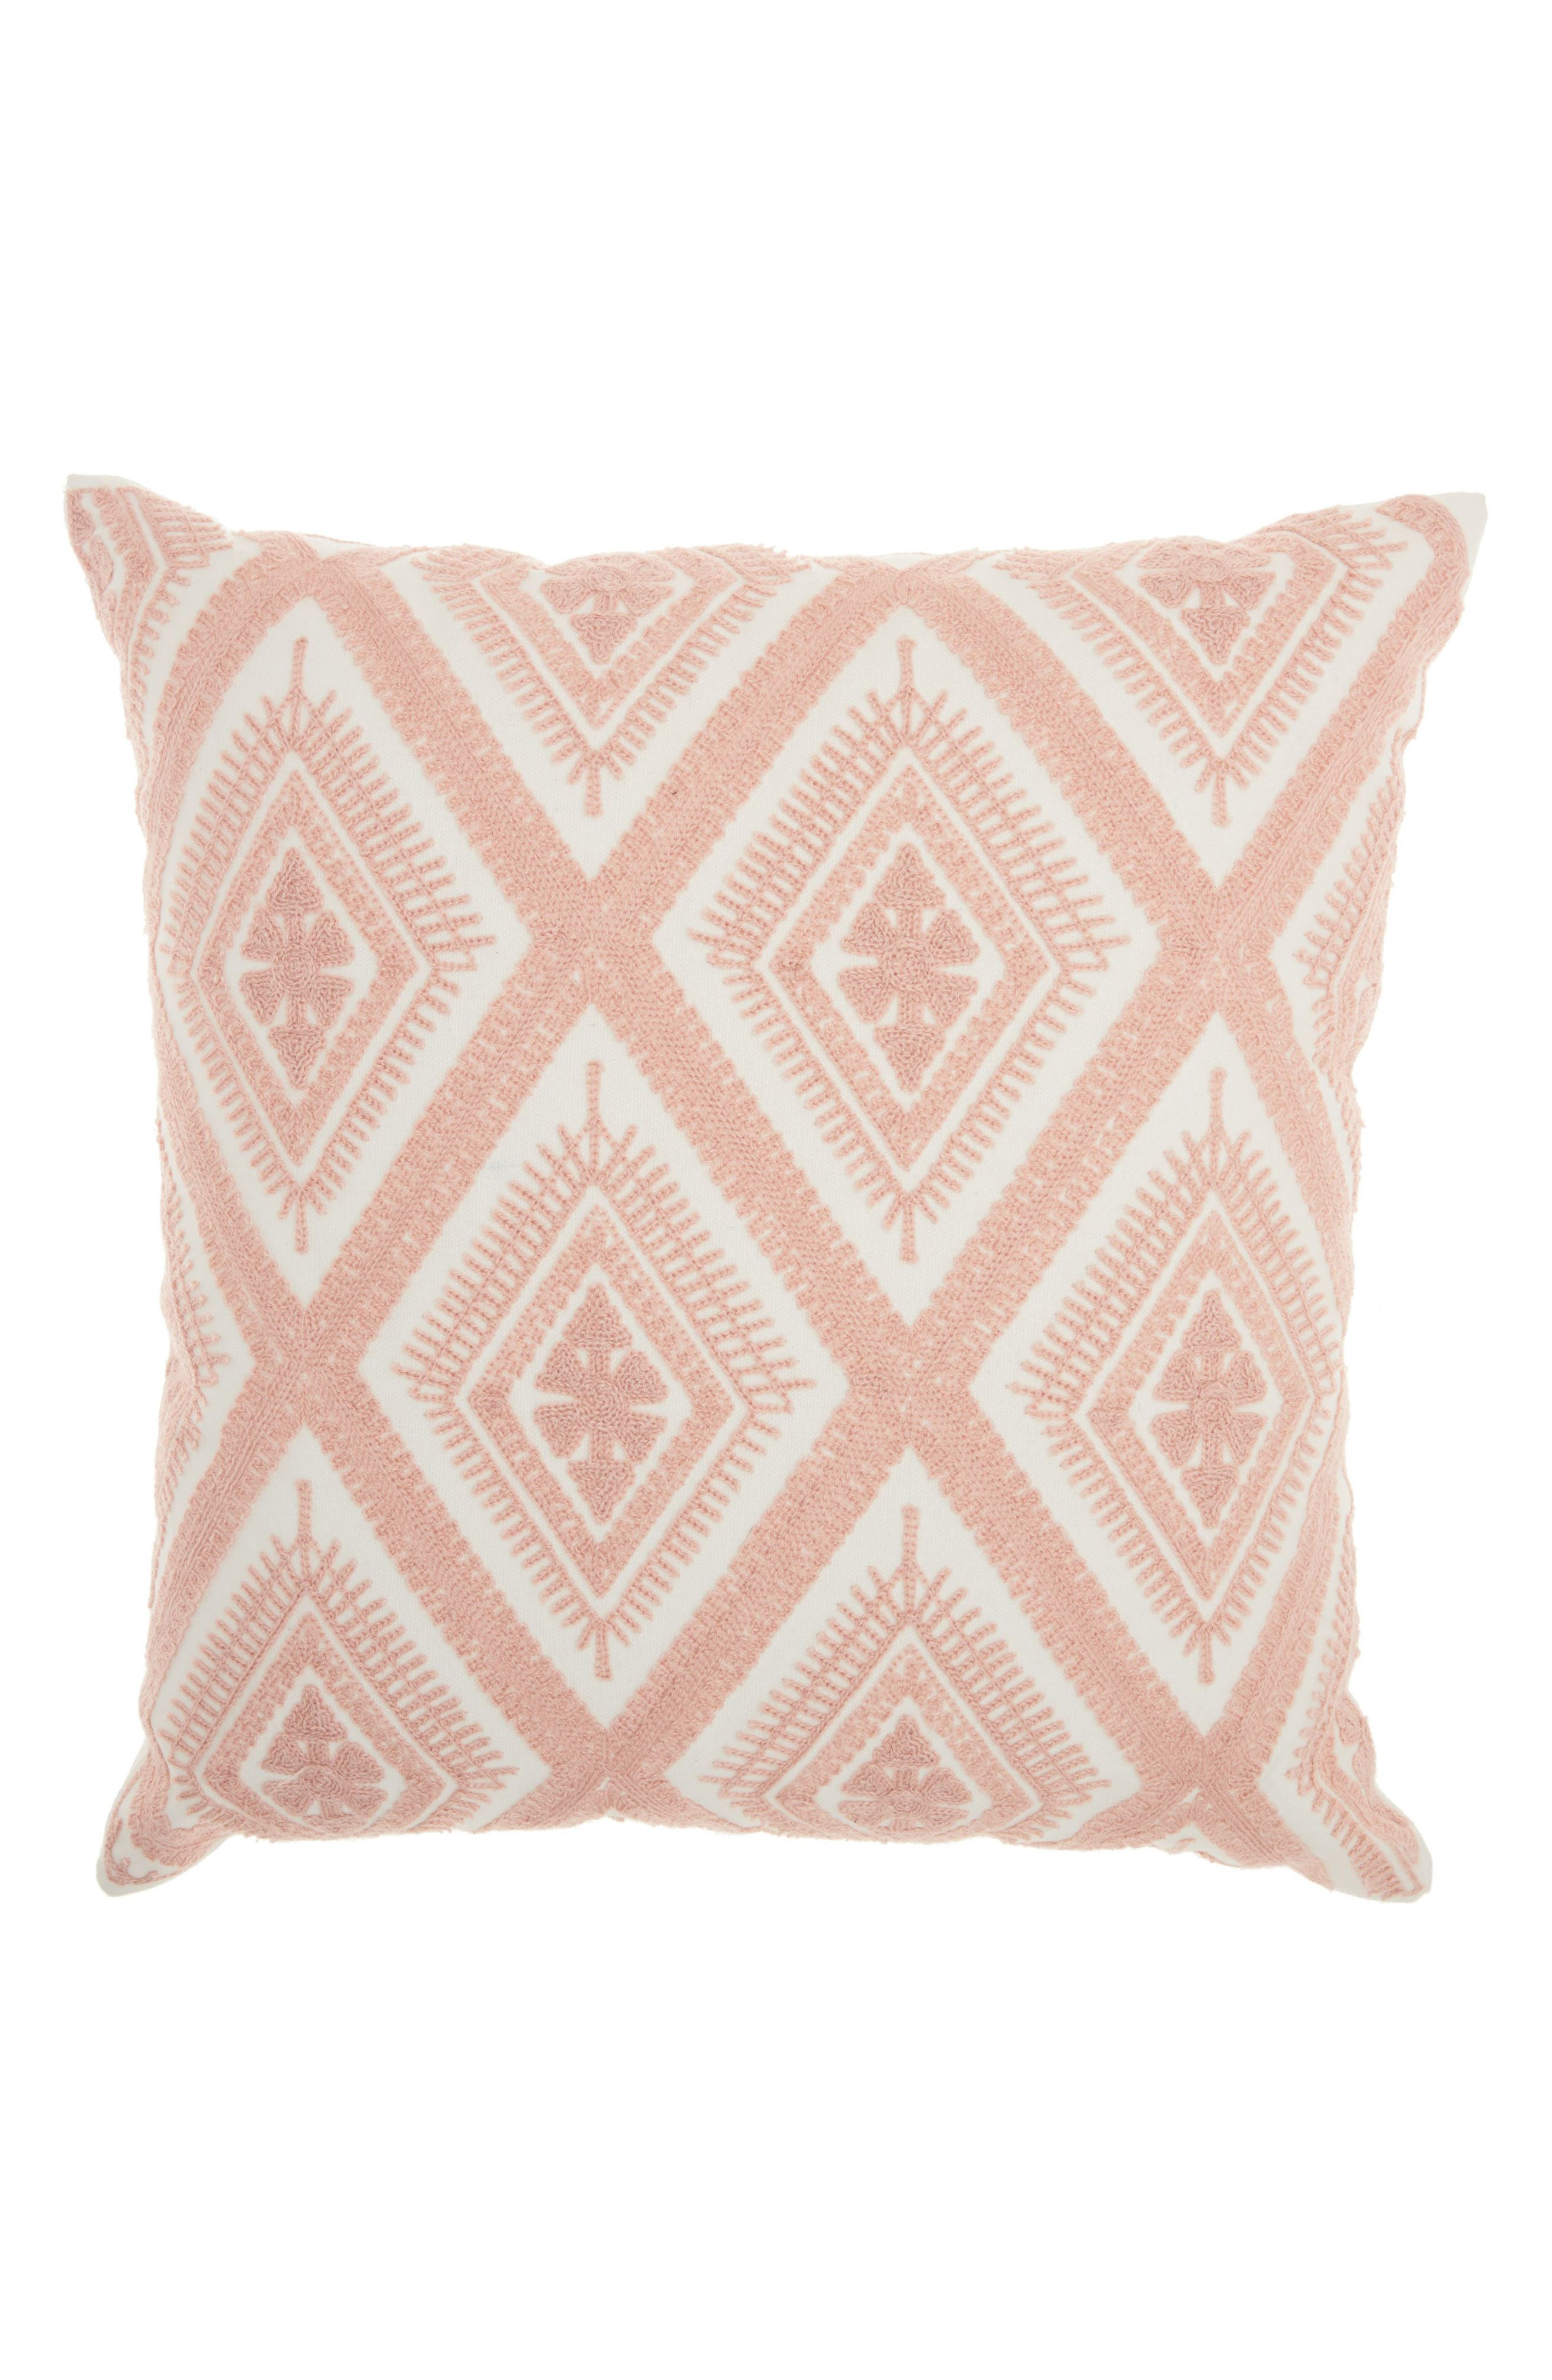 Mina Victory Diamond Embroidered Accent Pillow